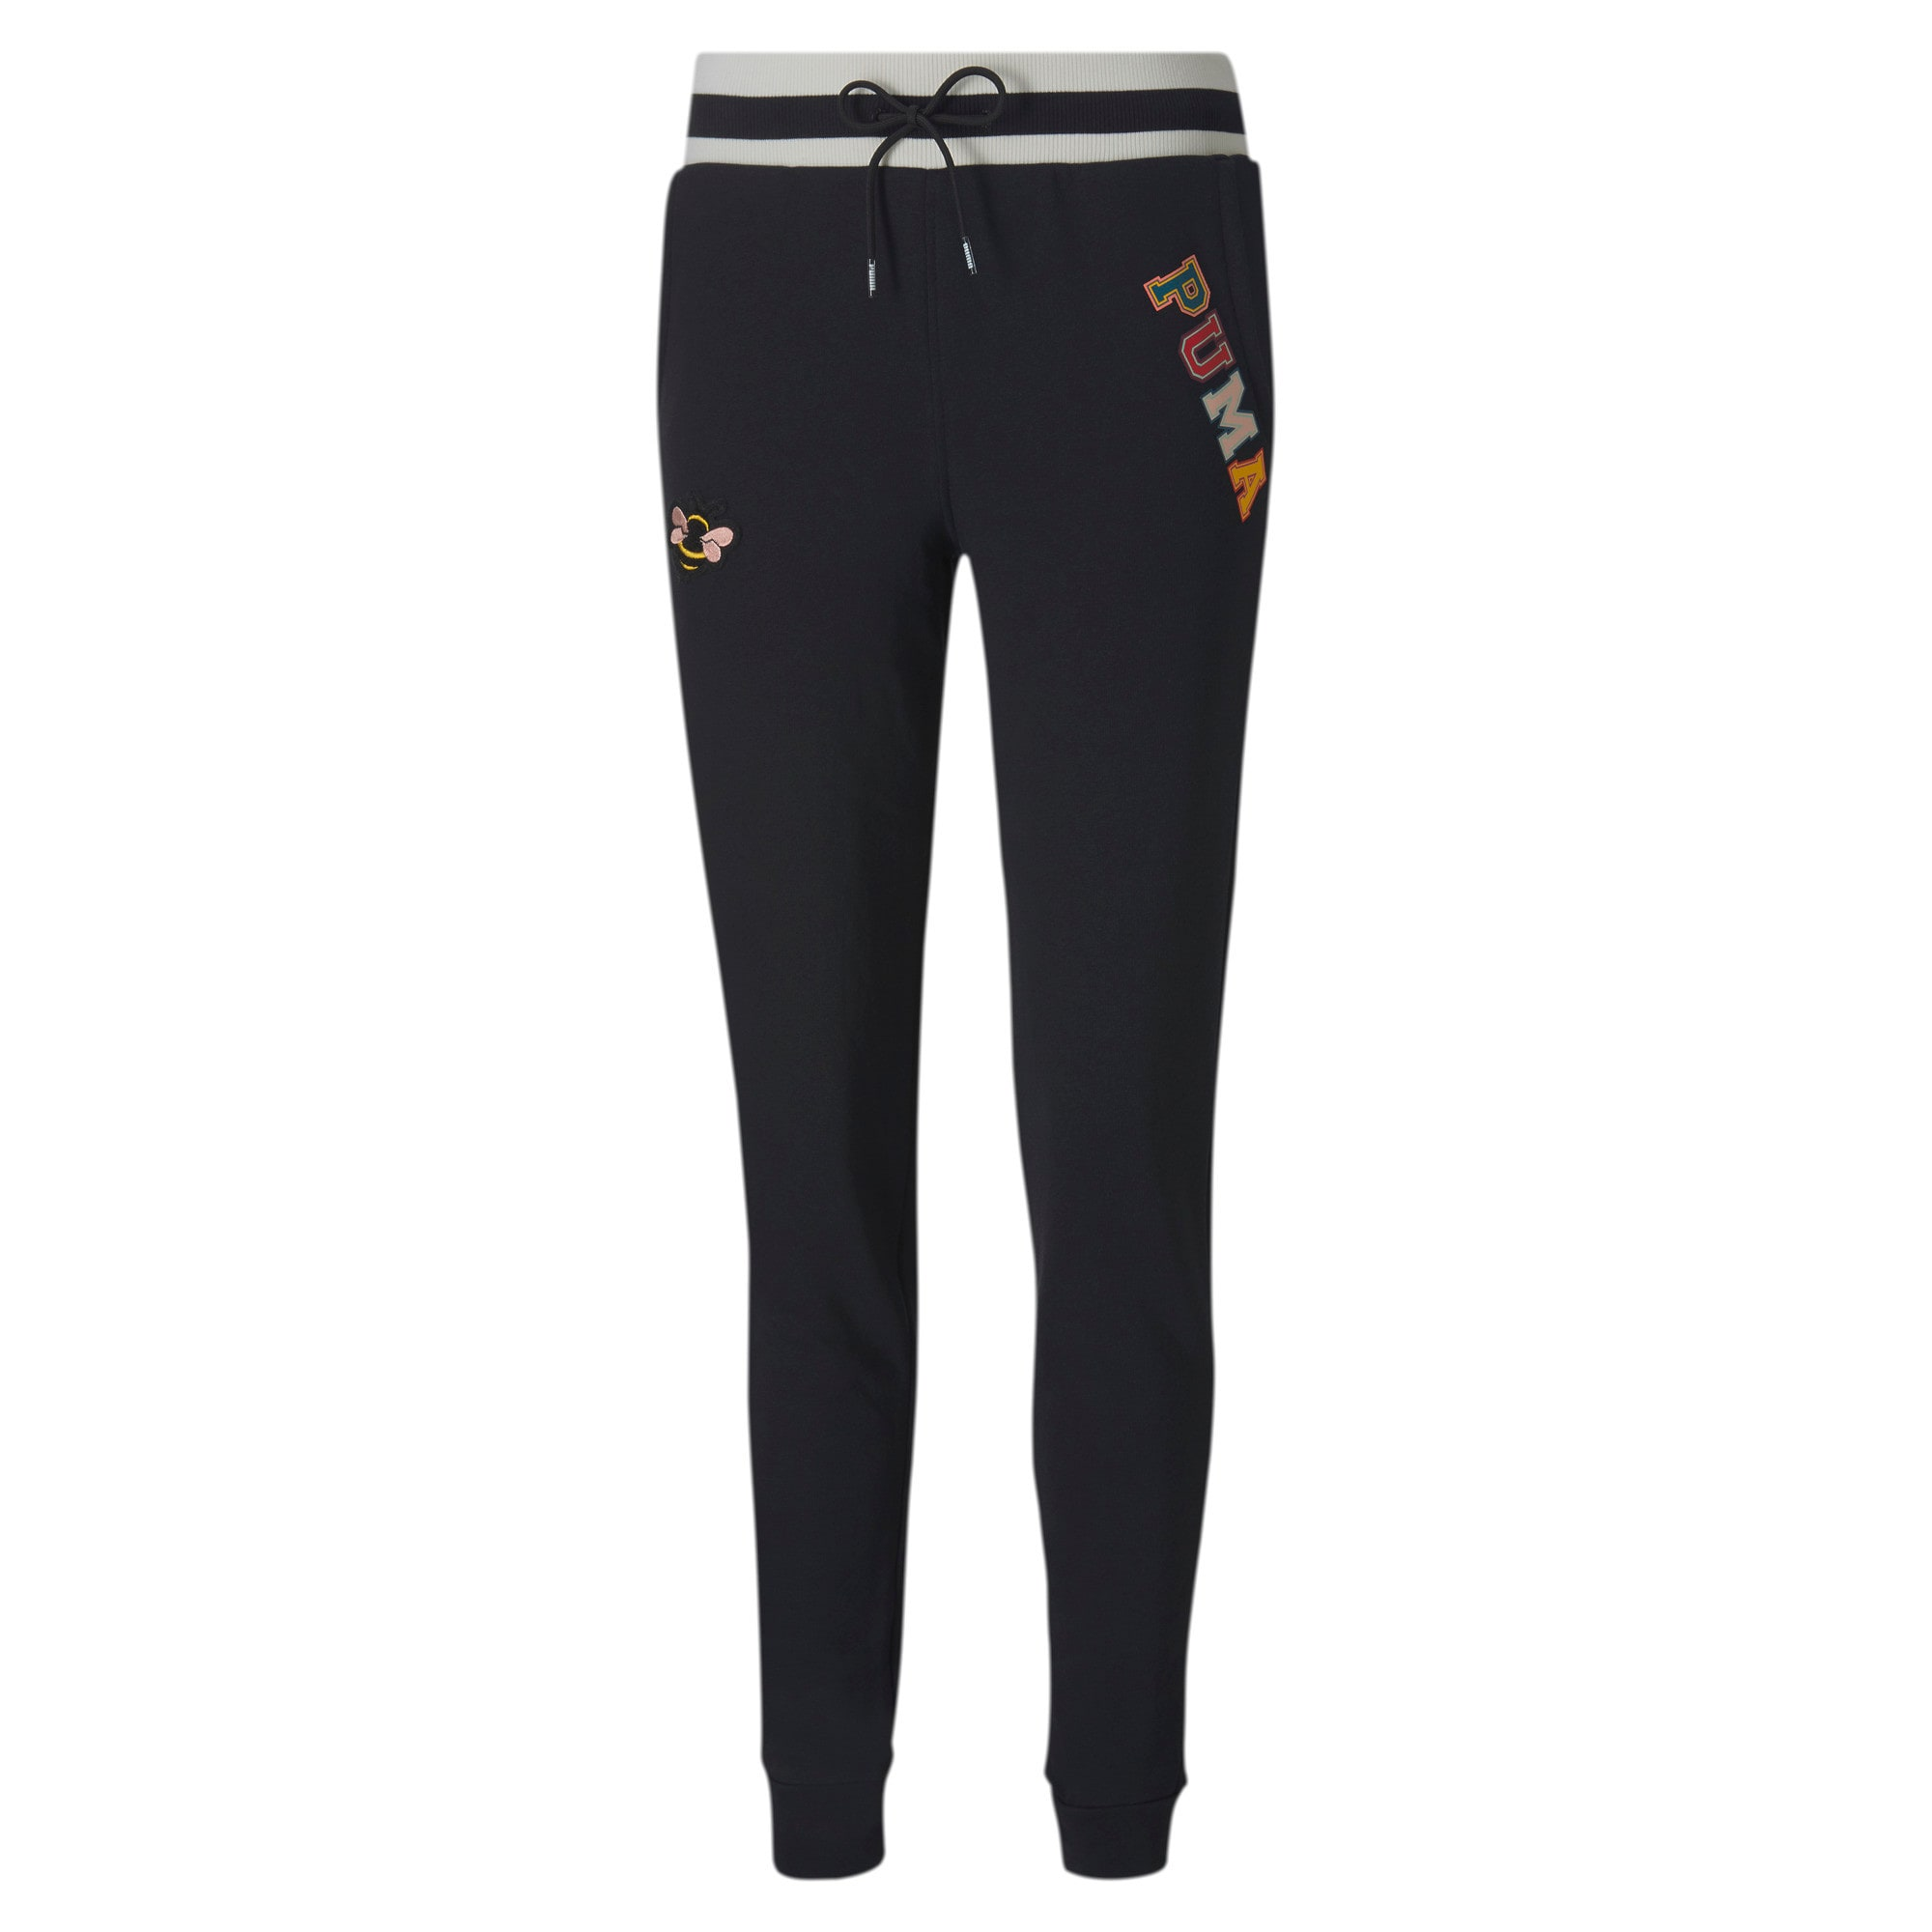 Thumbnail 1 of Pantalon en sweat PUMA x SUE TSAI pour femme, Puma Black, medium